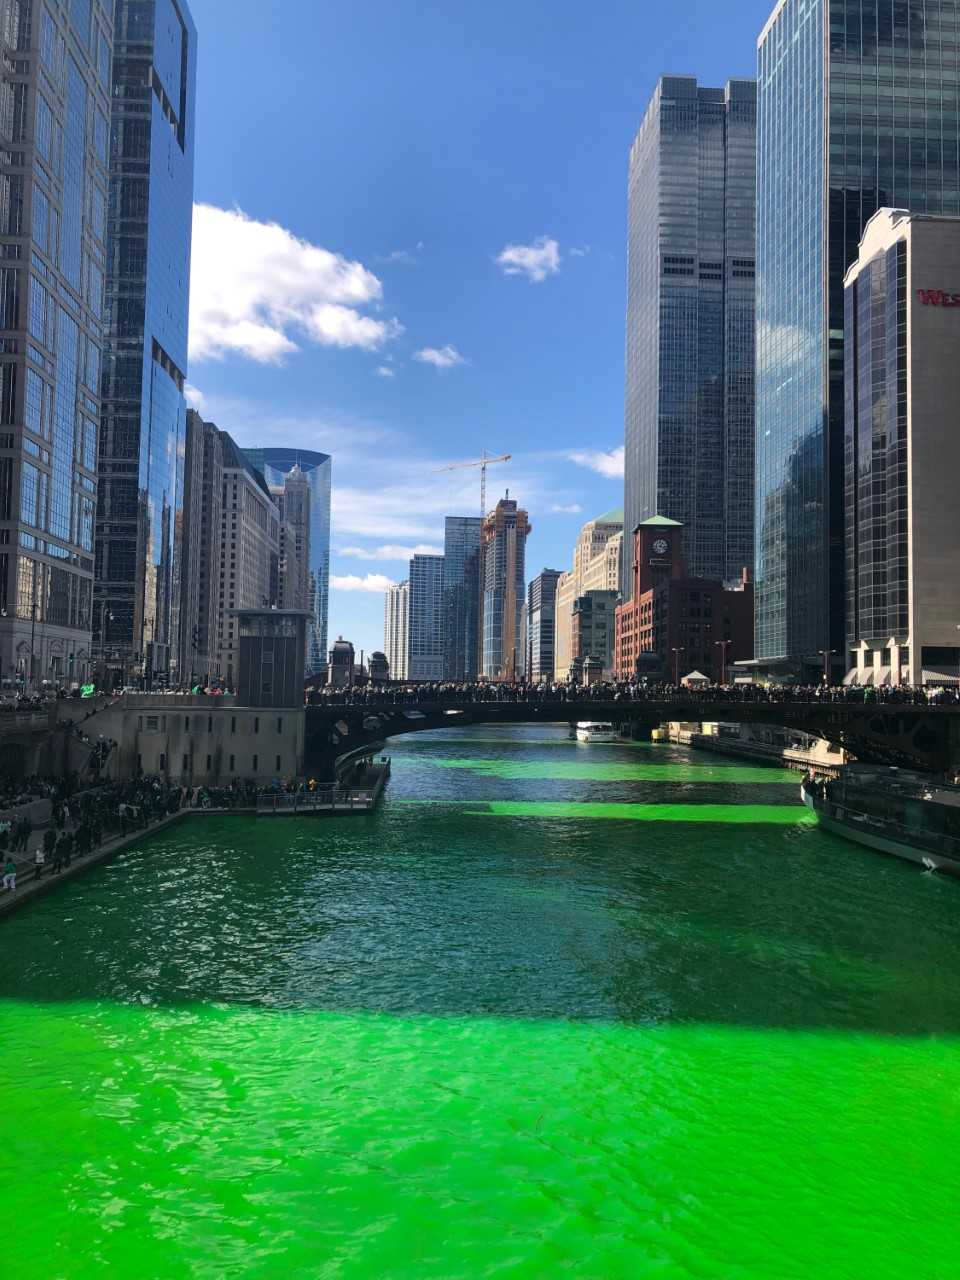 The Chicago River was dyed green for the St. Patrick's day celebrations that took place on Saturday, March 16 and Sunday, March 17.